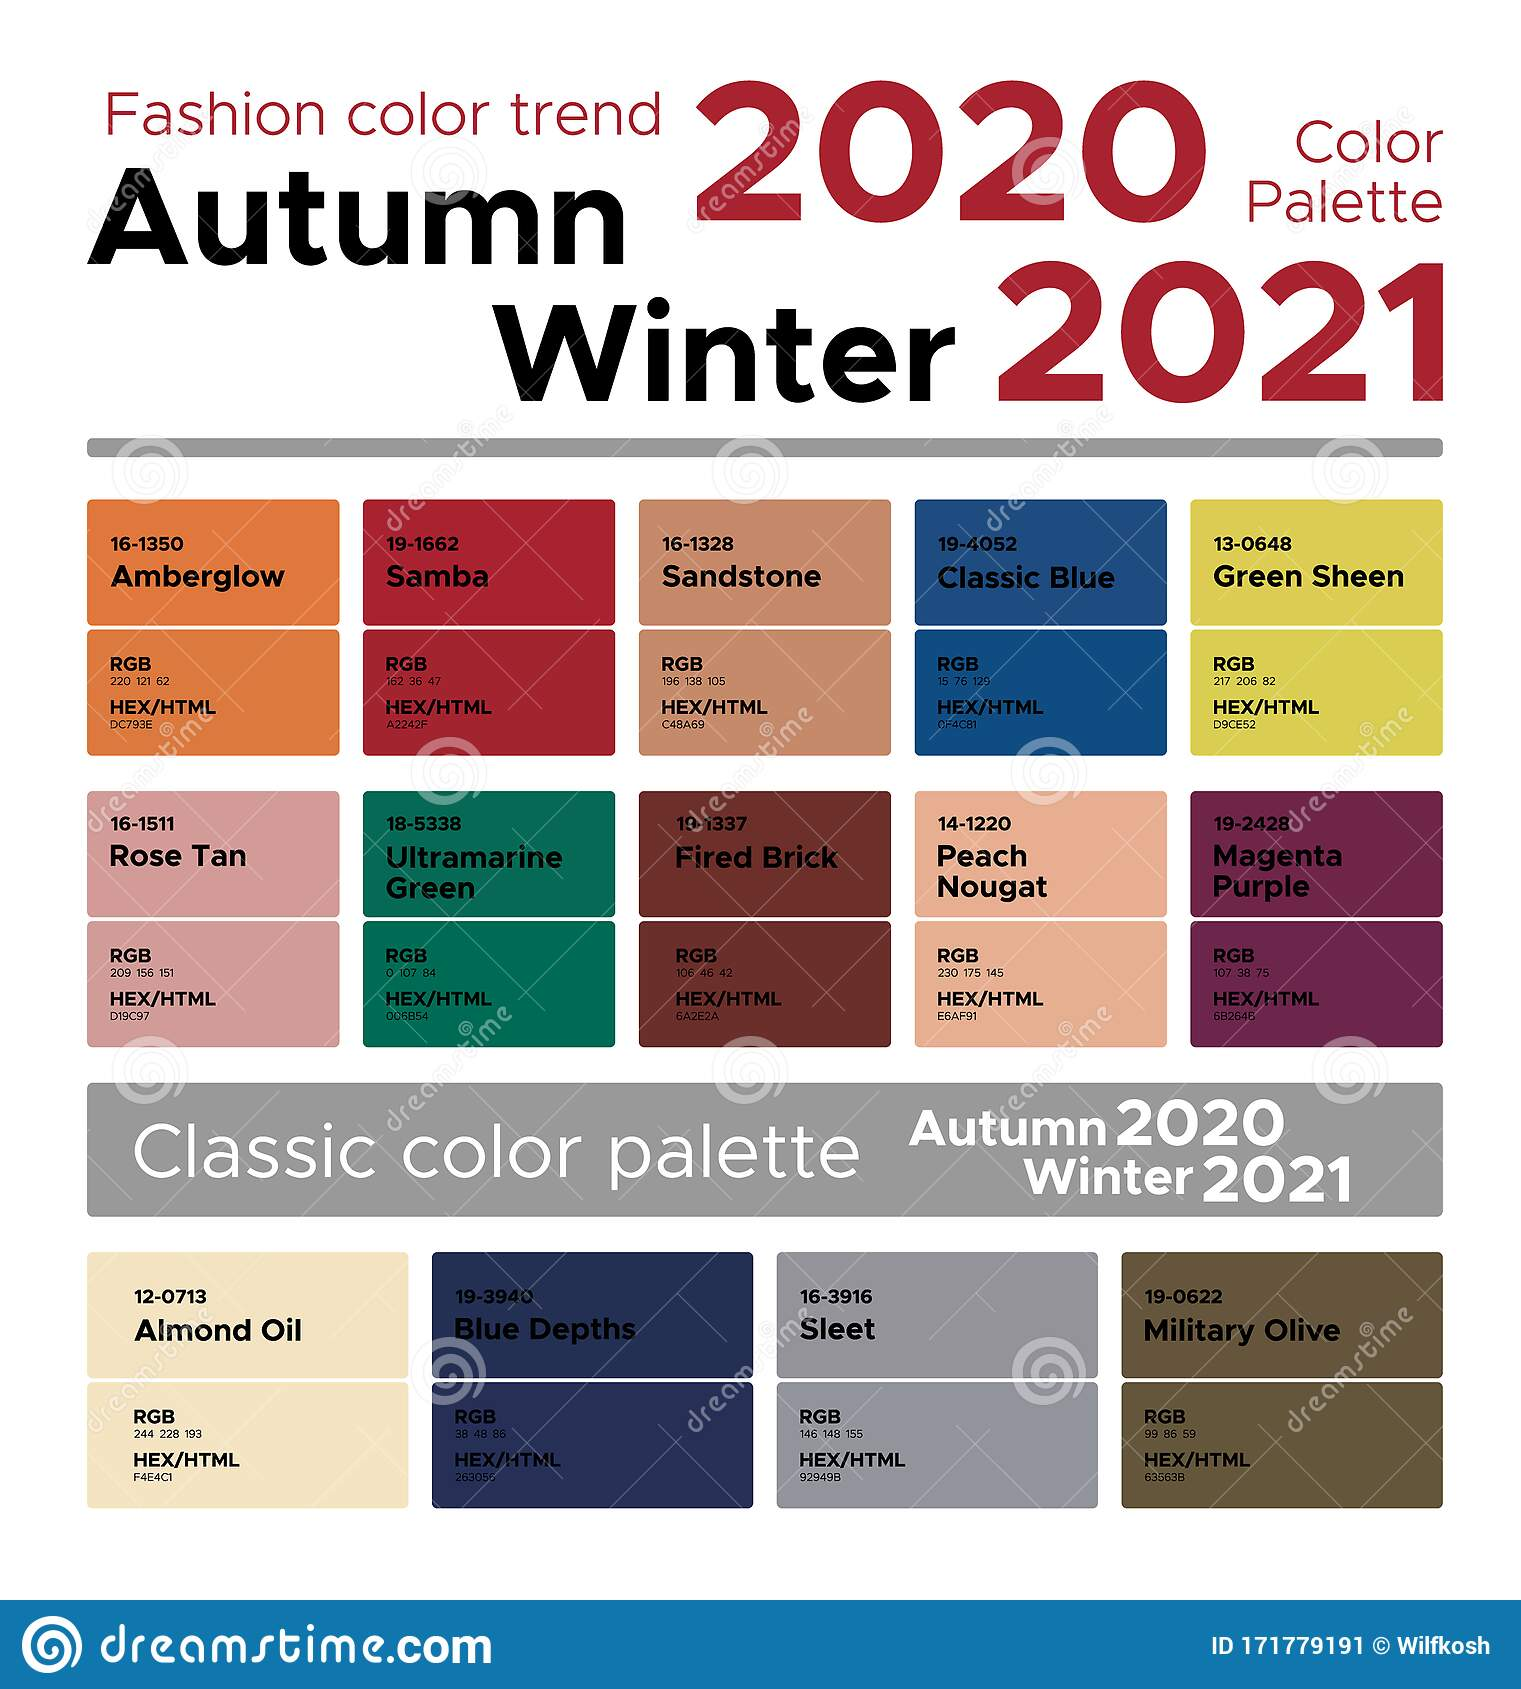 Fashion Color Trend Autumn Winter 2020 2021 Palette Fashion Colors Guide With Named Color Swatches Editorial Photo Illustration Of Fall Colors 171779191